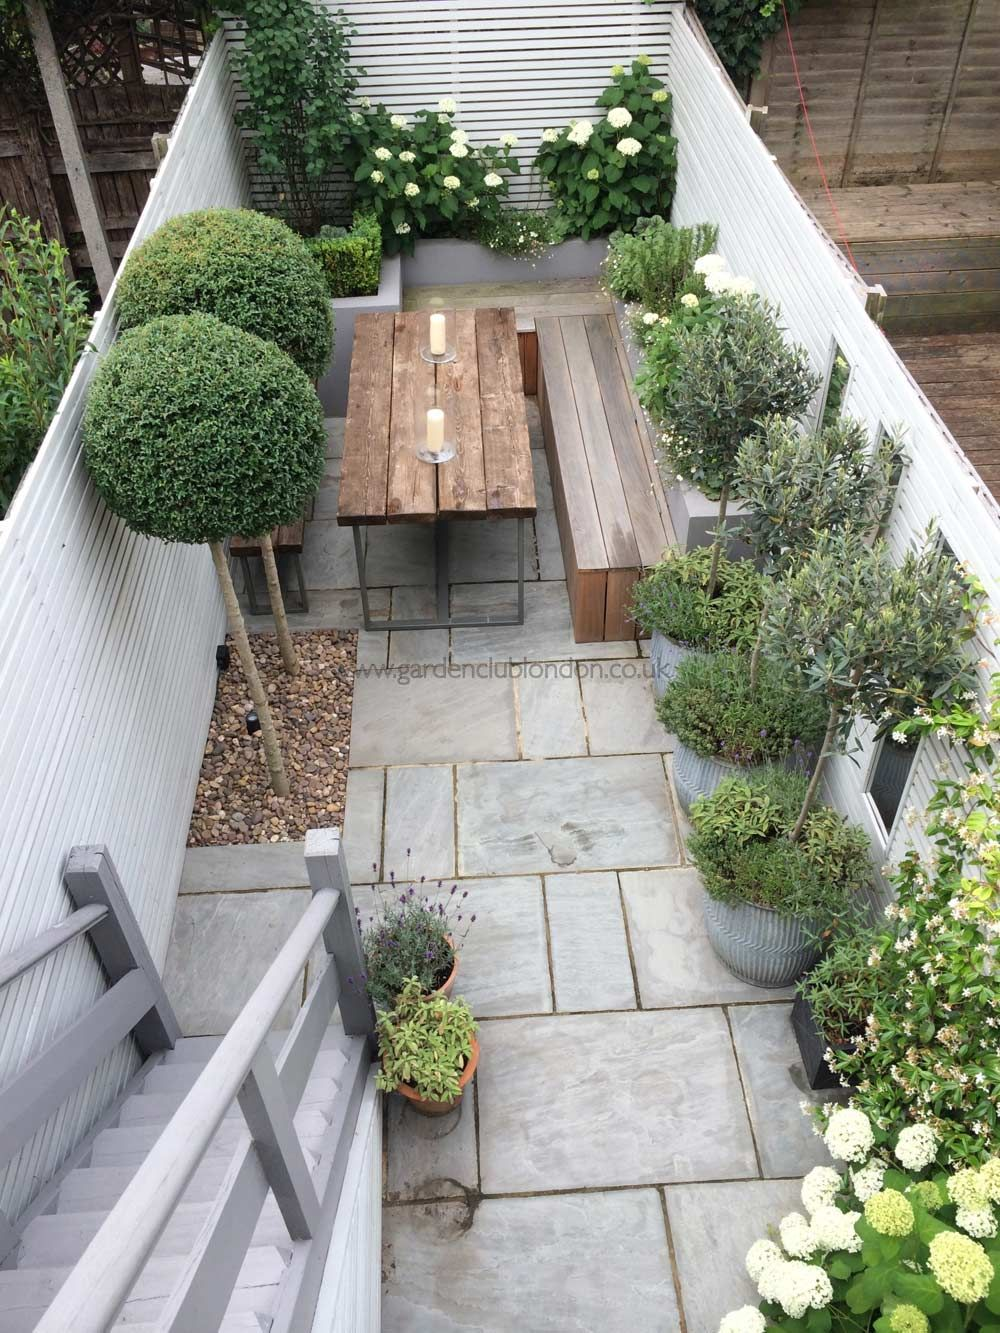 40 Garden Ideas For A Small Backyard For The Home Backyard - Small-gardens-idea